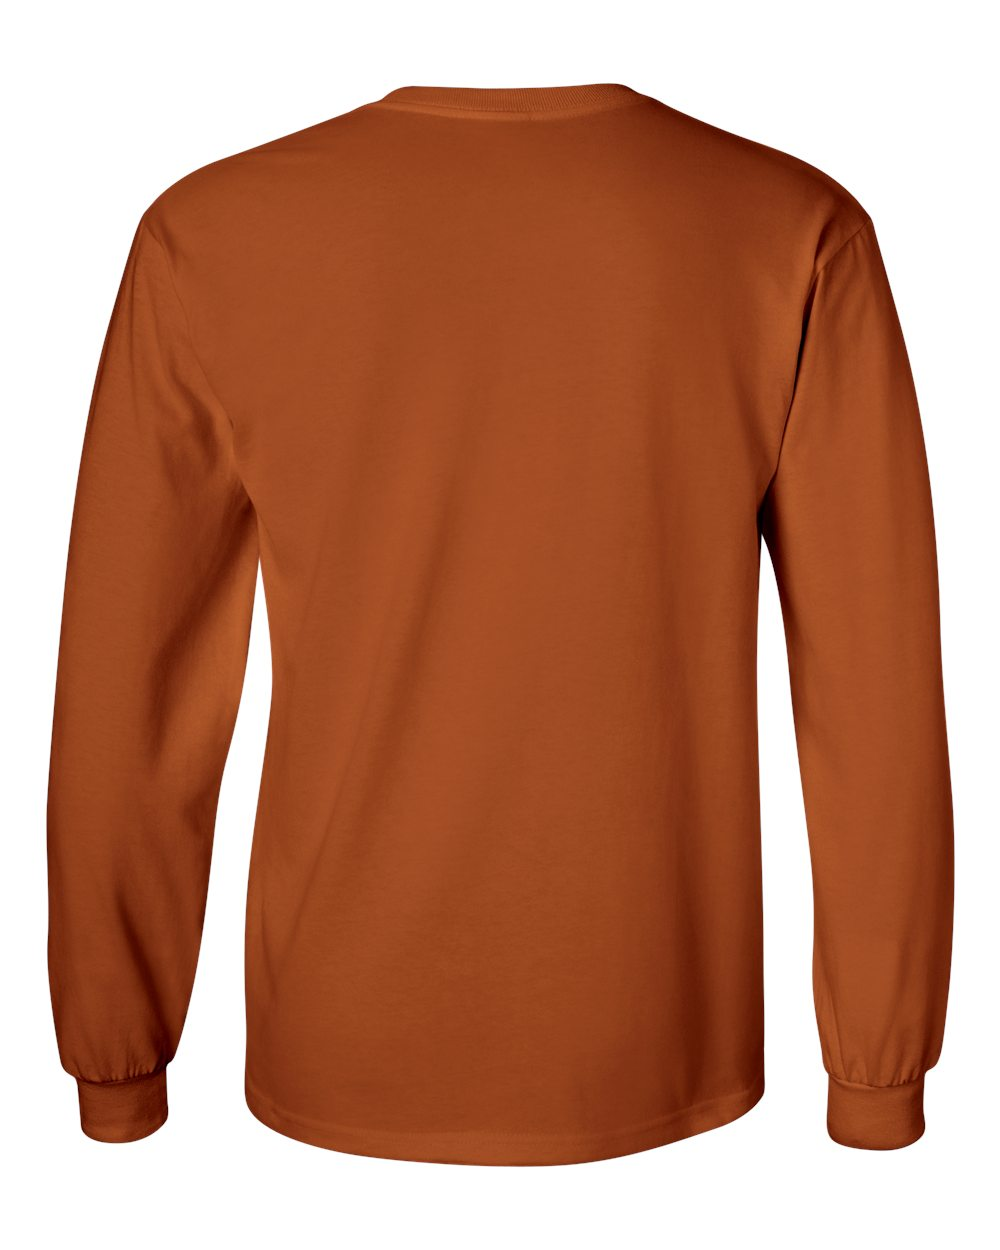 Gildan-Men-039-s-Ultra-Cotton-6-oz-Long-Sleeve-T-Shirt-G240-S-5XL thumbnail 108